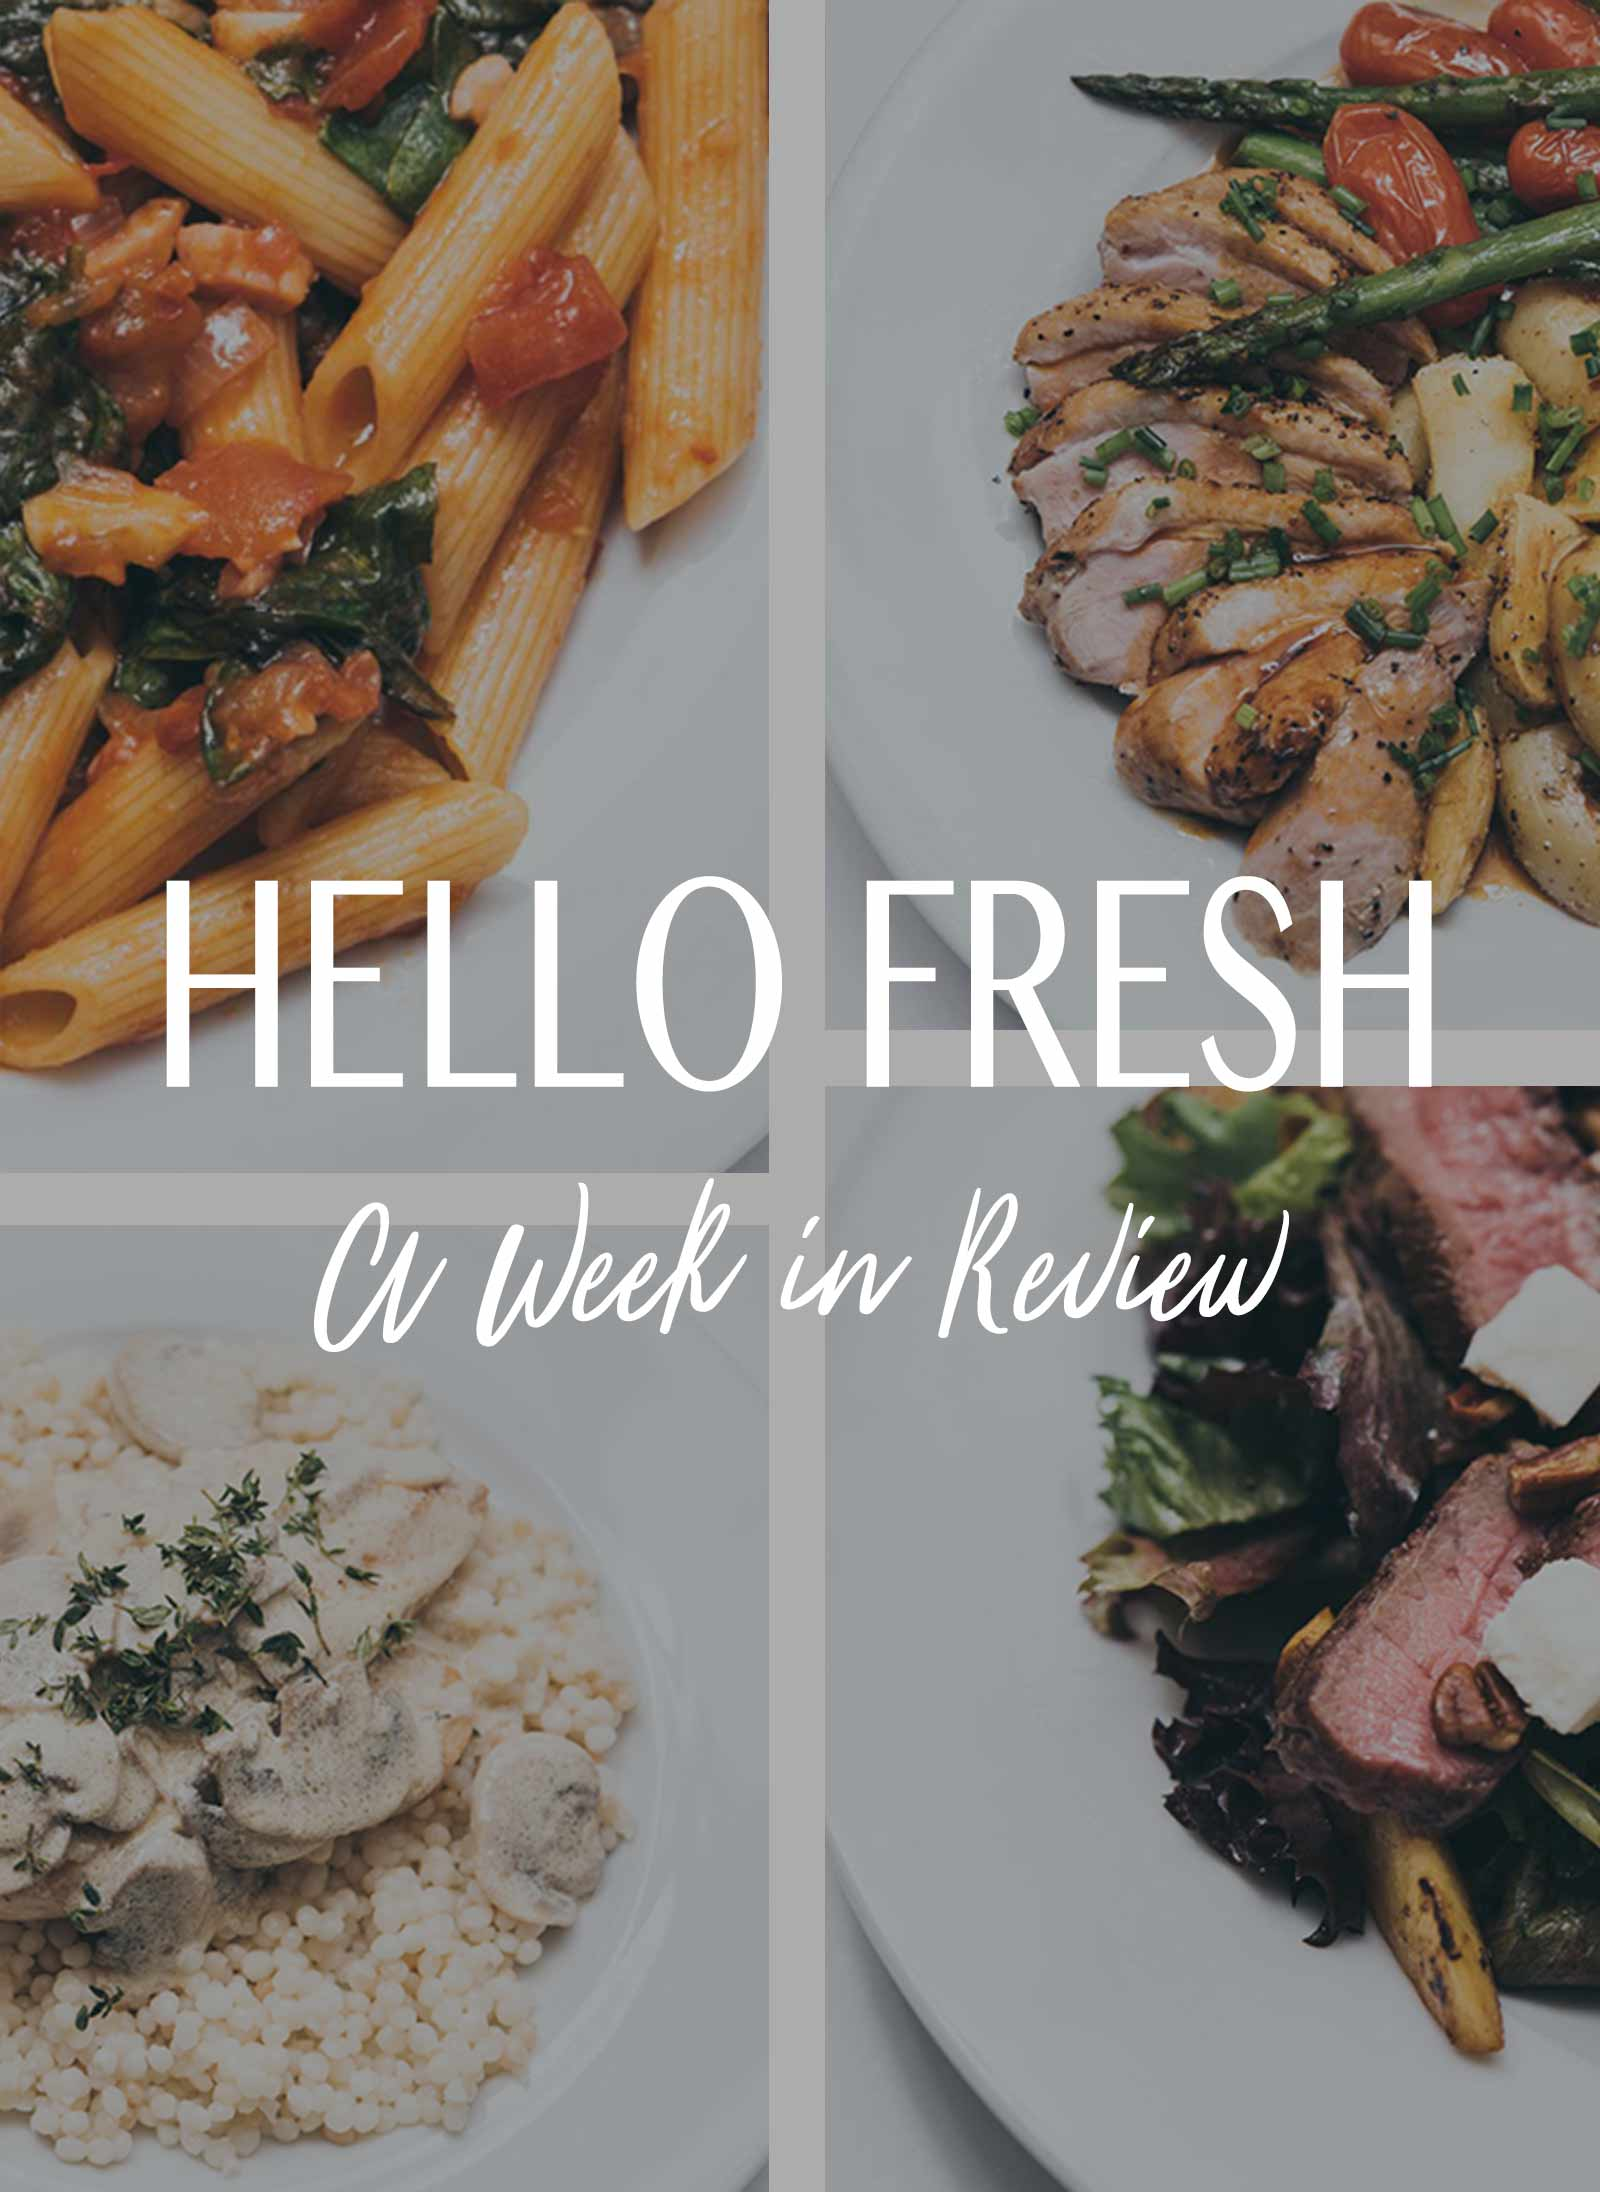 Voucher Code 10 Hellofresh April